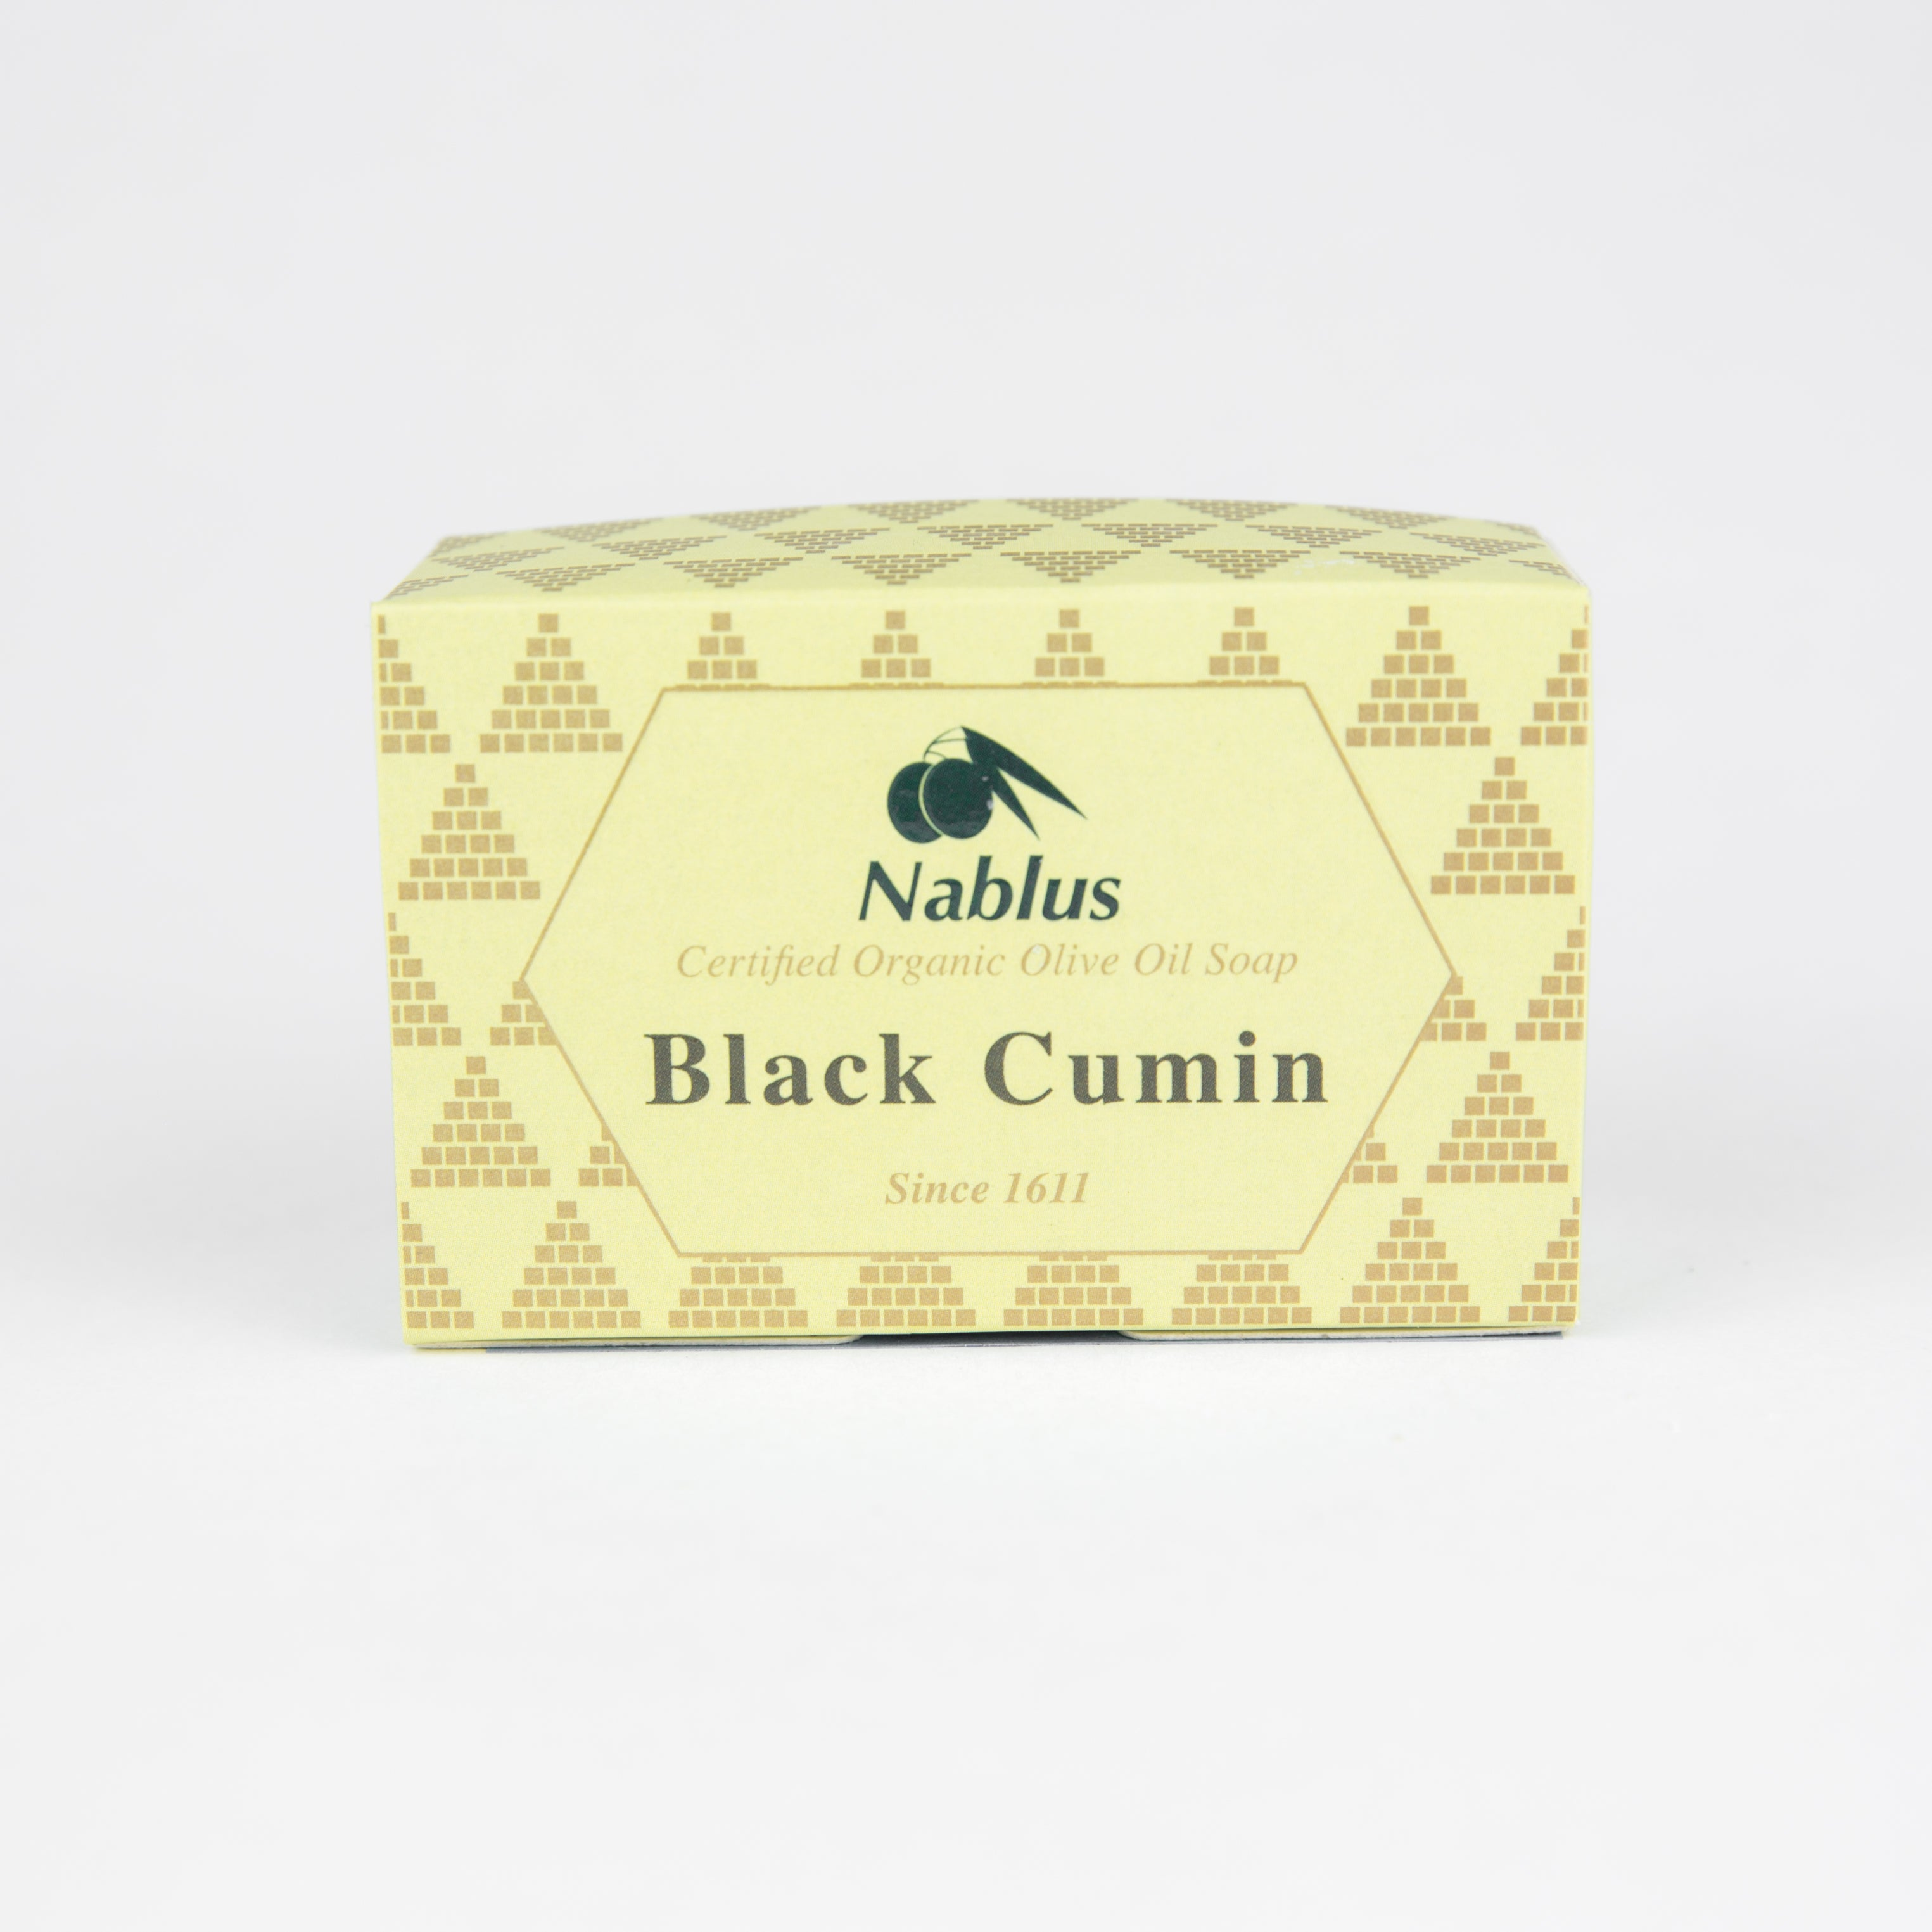 Black Cumin Nablus Soap